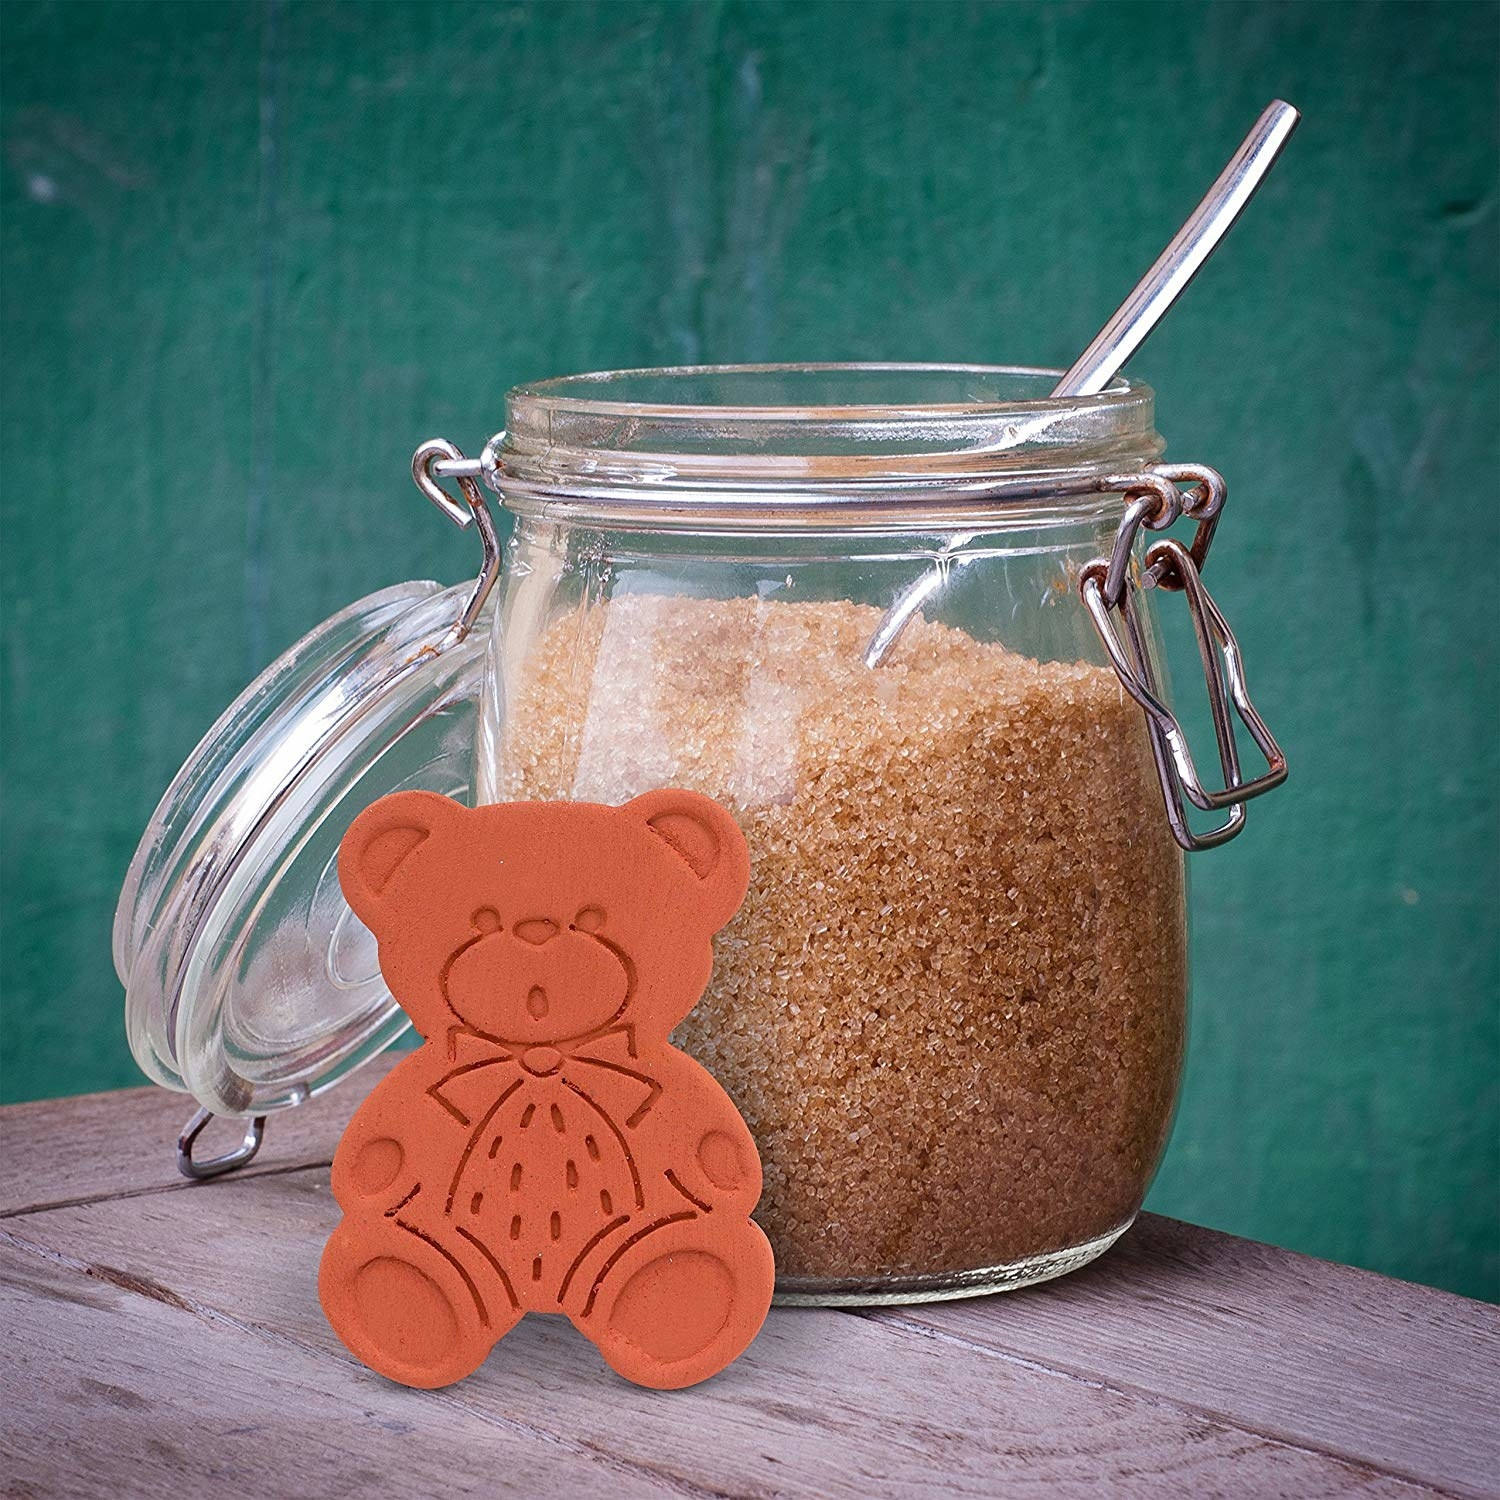 the terracotta bear in front of a jar of brown sugar